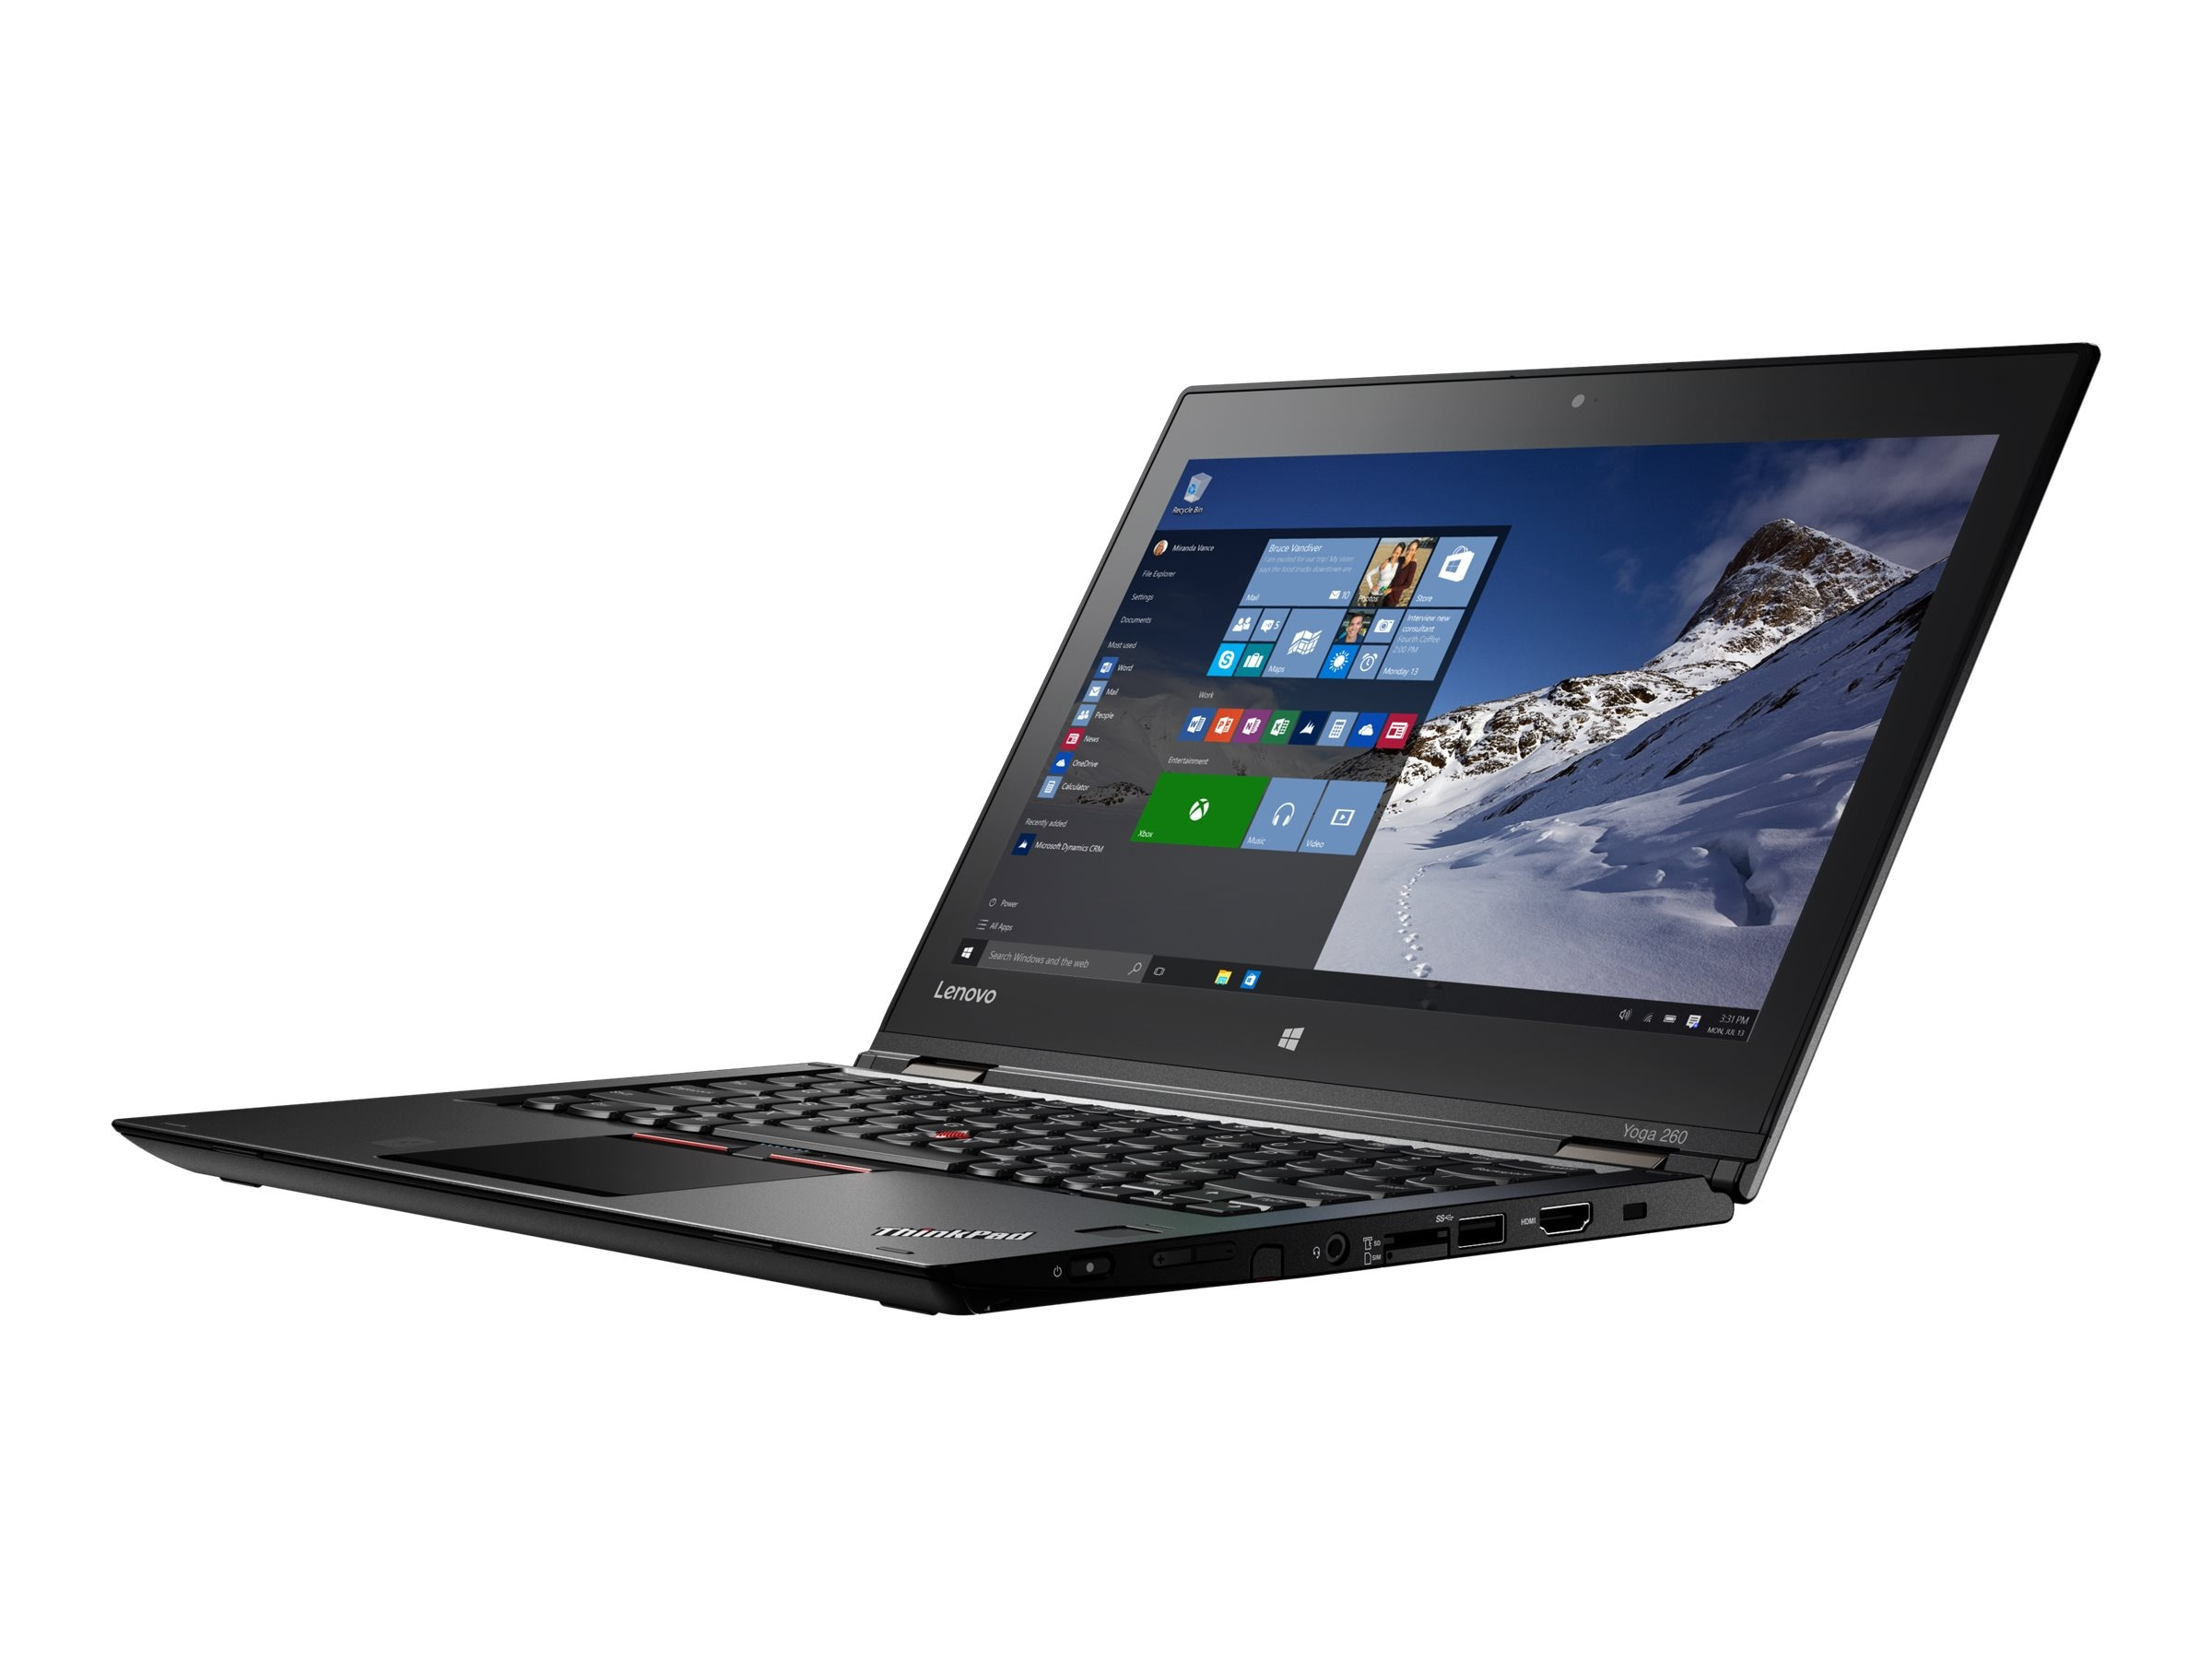 Lenovo TopSeller ThinkPad Yoga 260 Core i7-6600U 2.6GHz 8GB 256GB OPL2 ac BT FR WC Dock 12.5 FHD MT W10P64